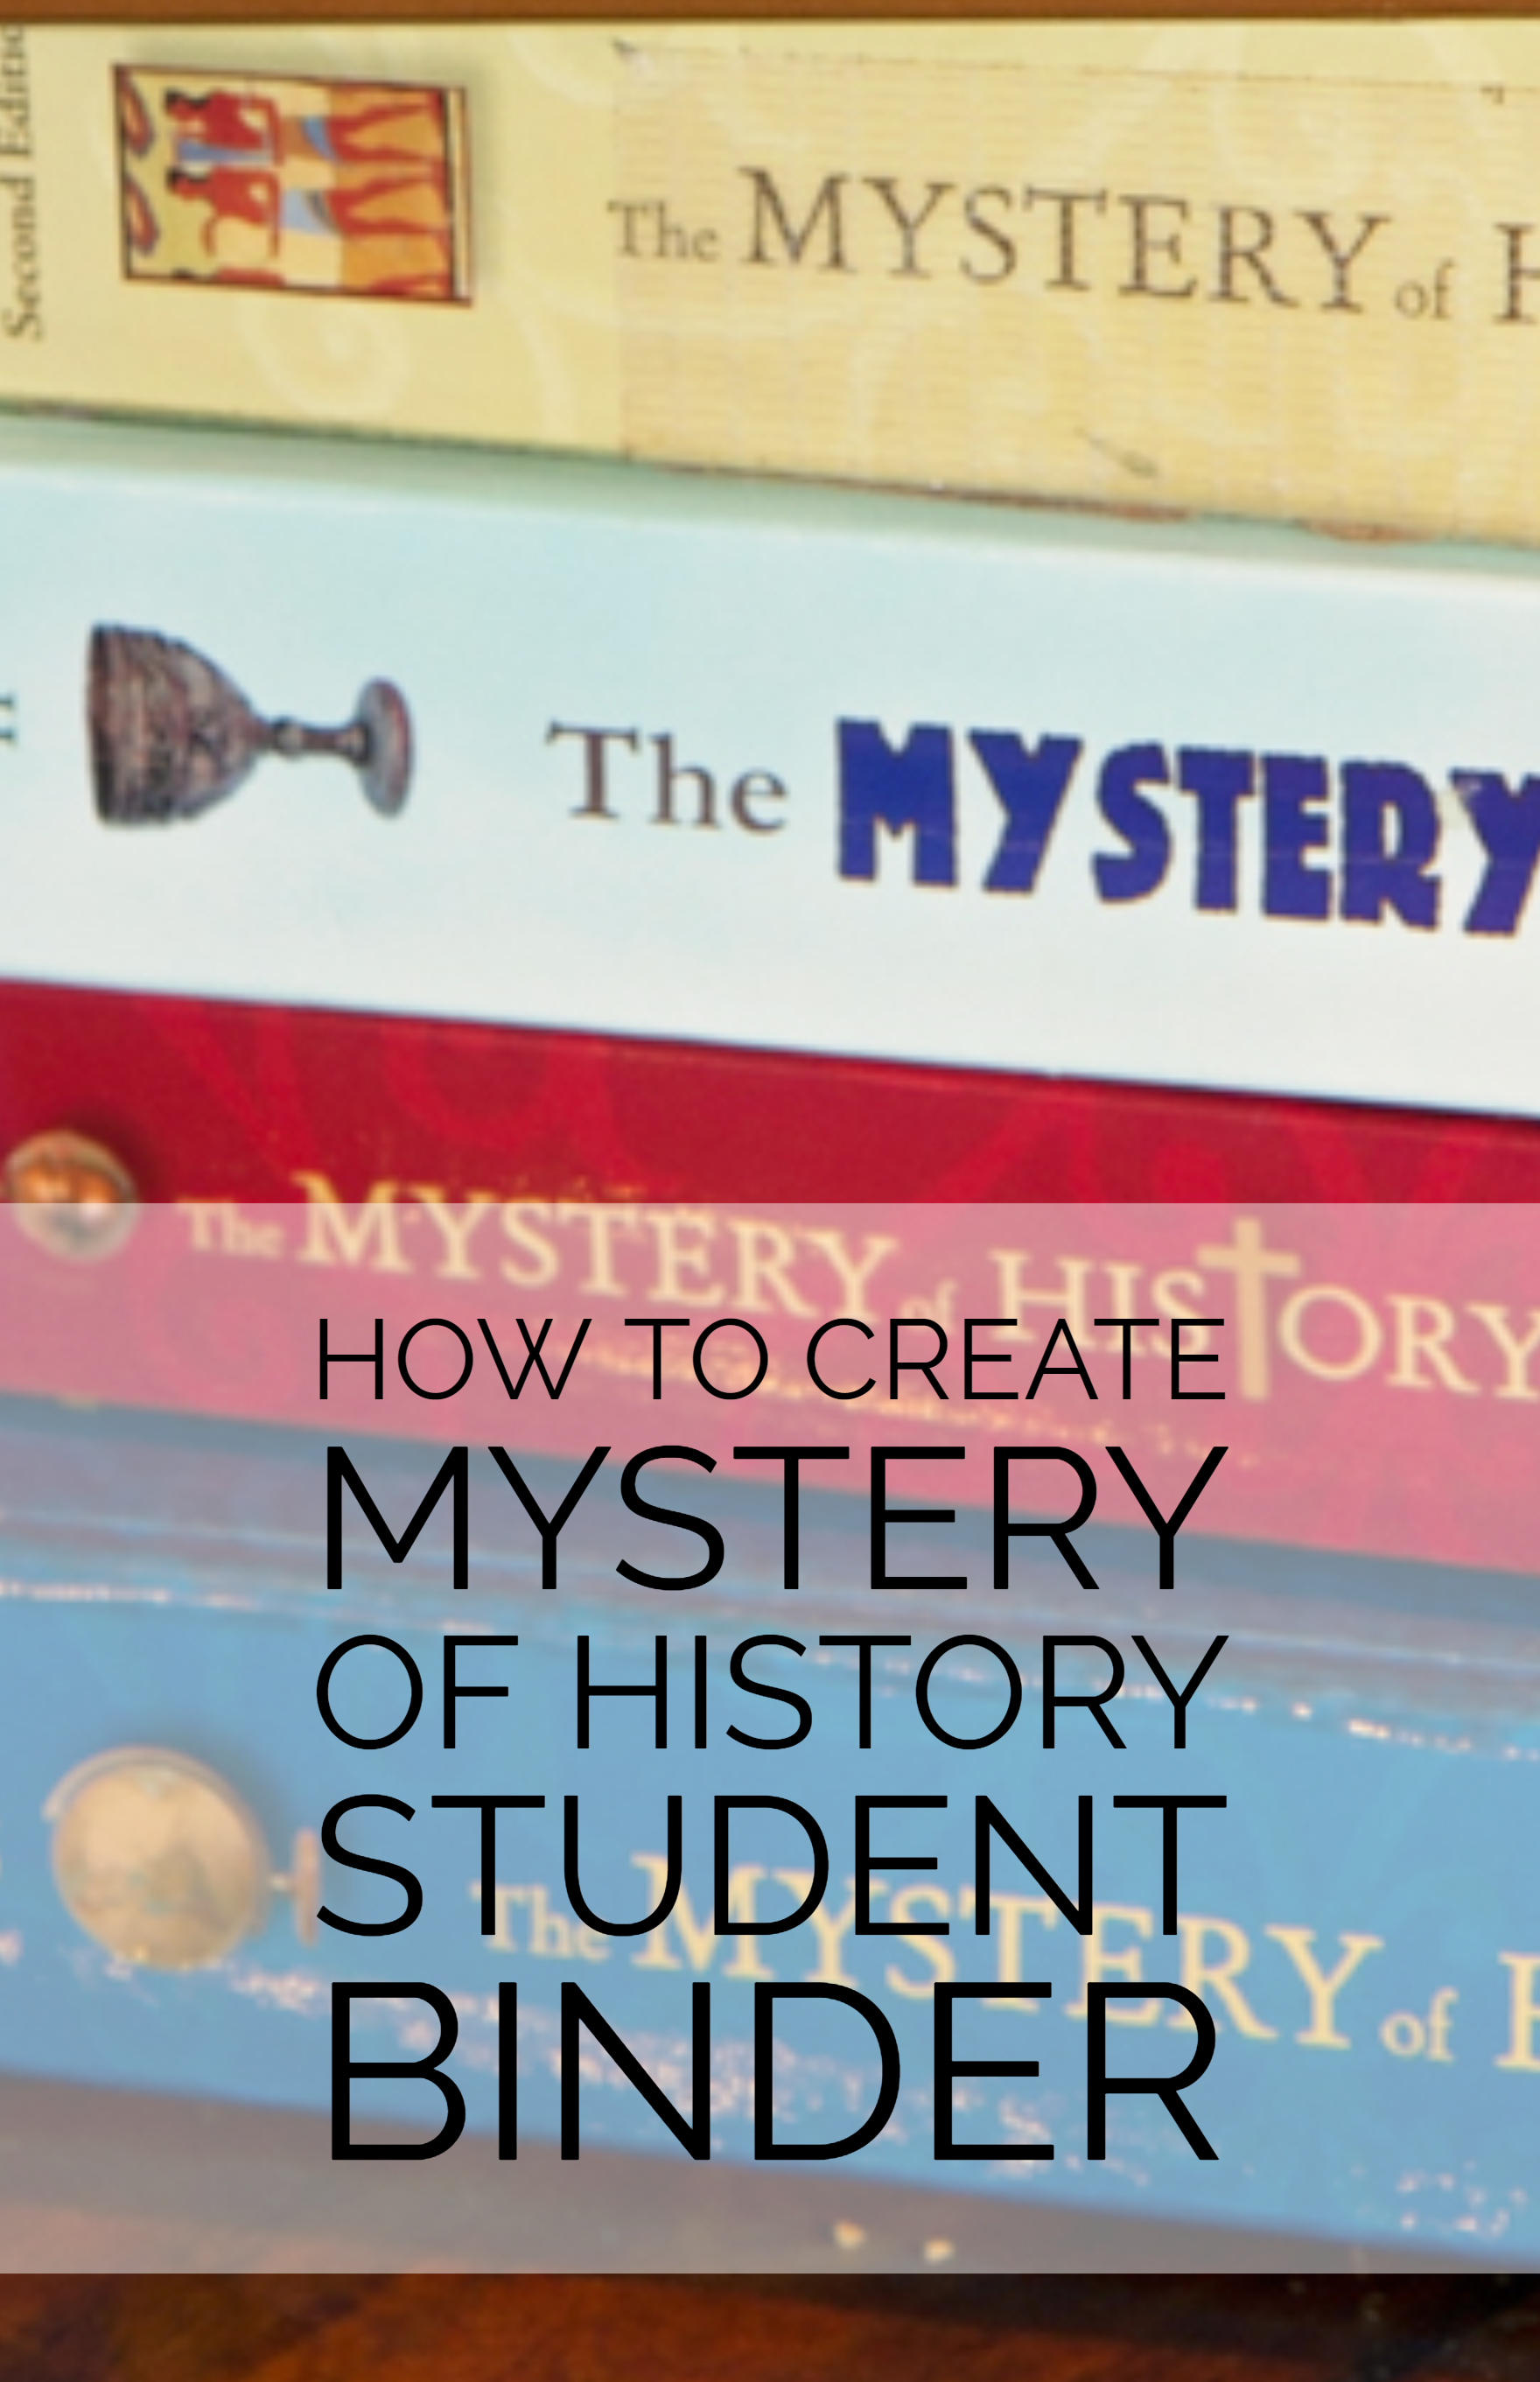 How To Create Mystery of History Student Binder  Tiaras & Tantrums Homeschooling